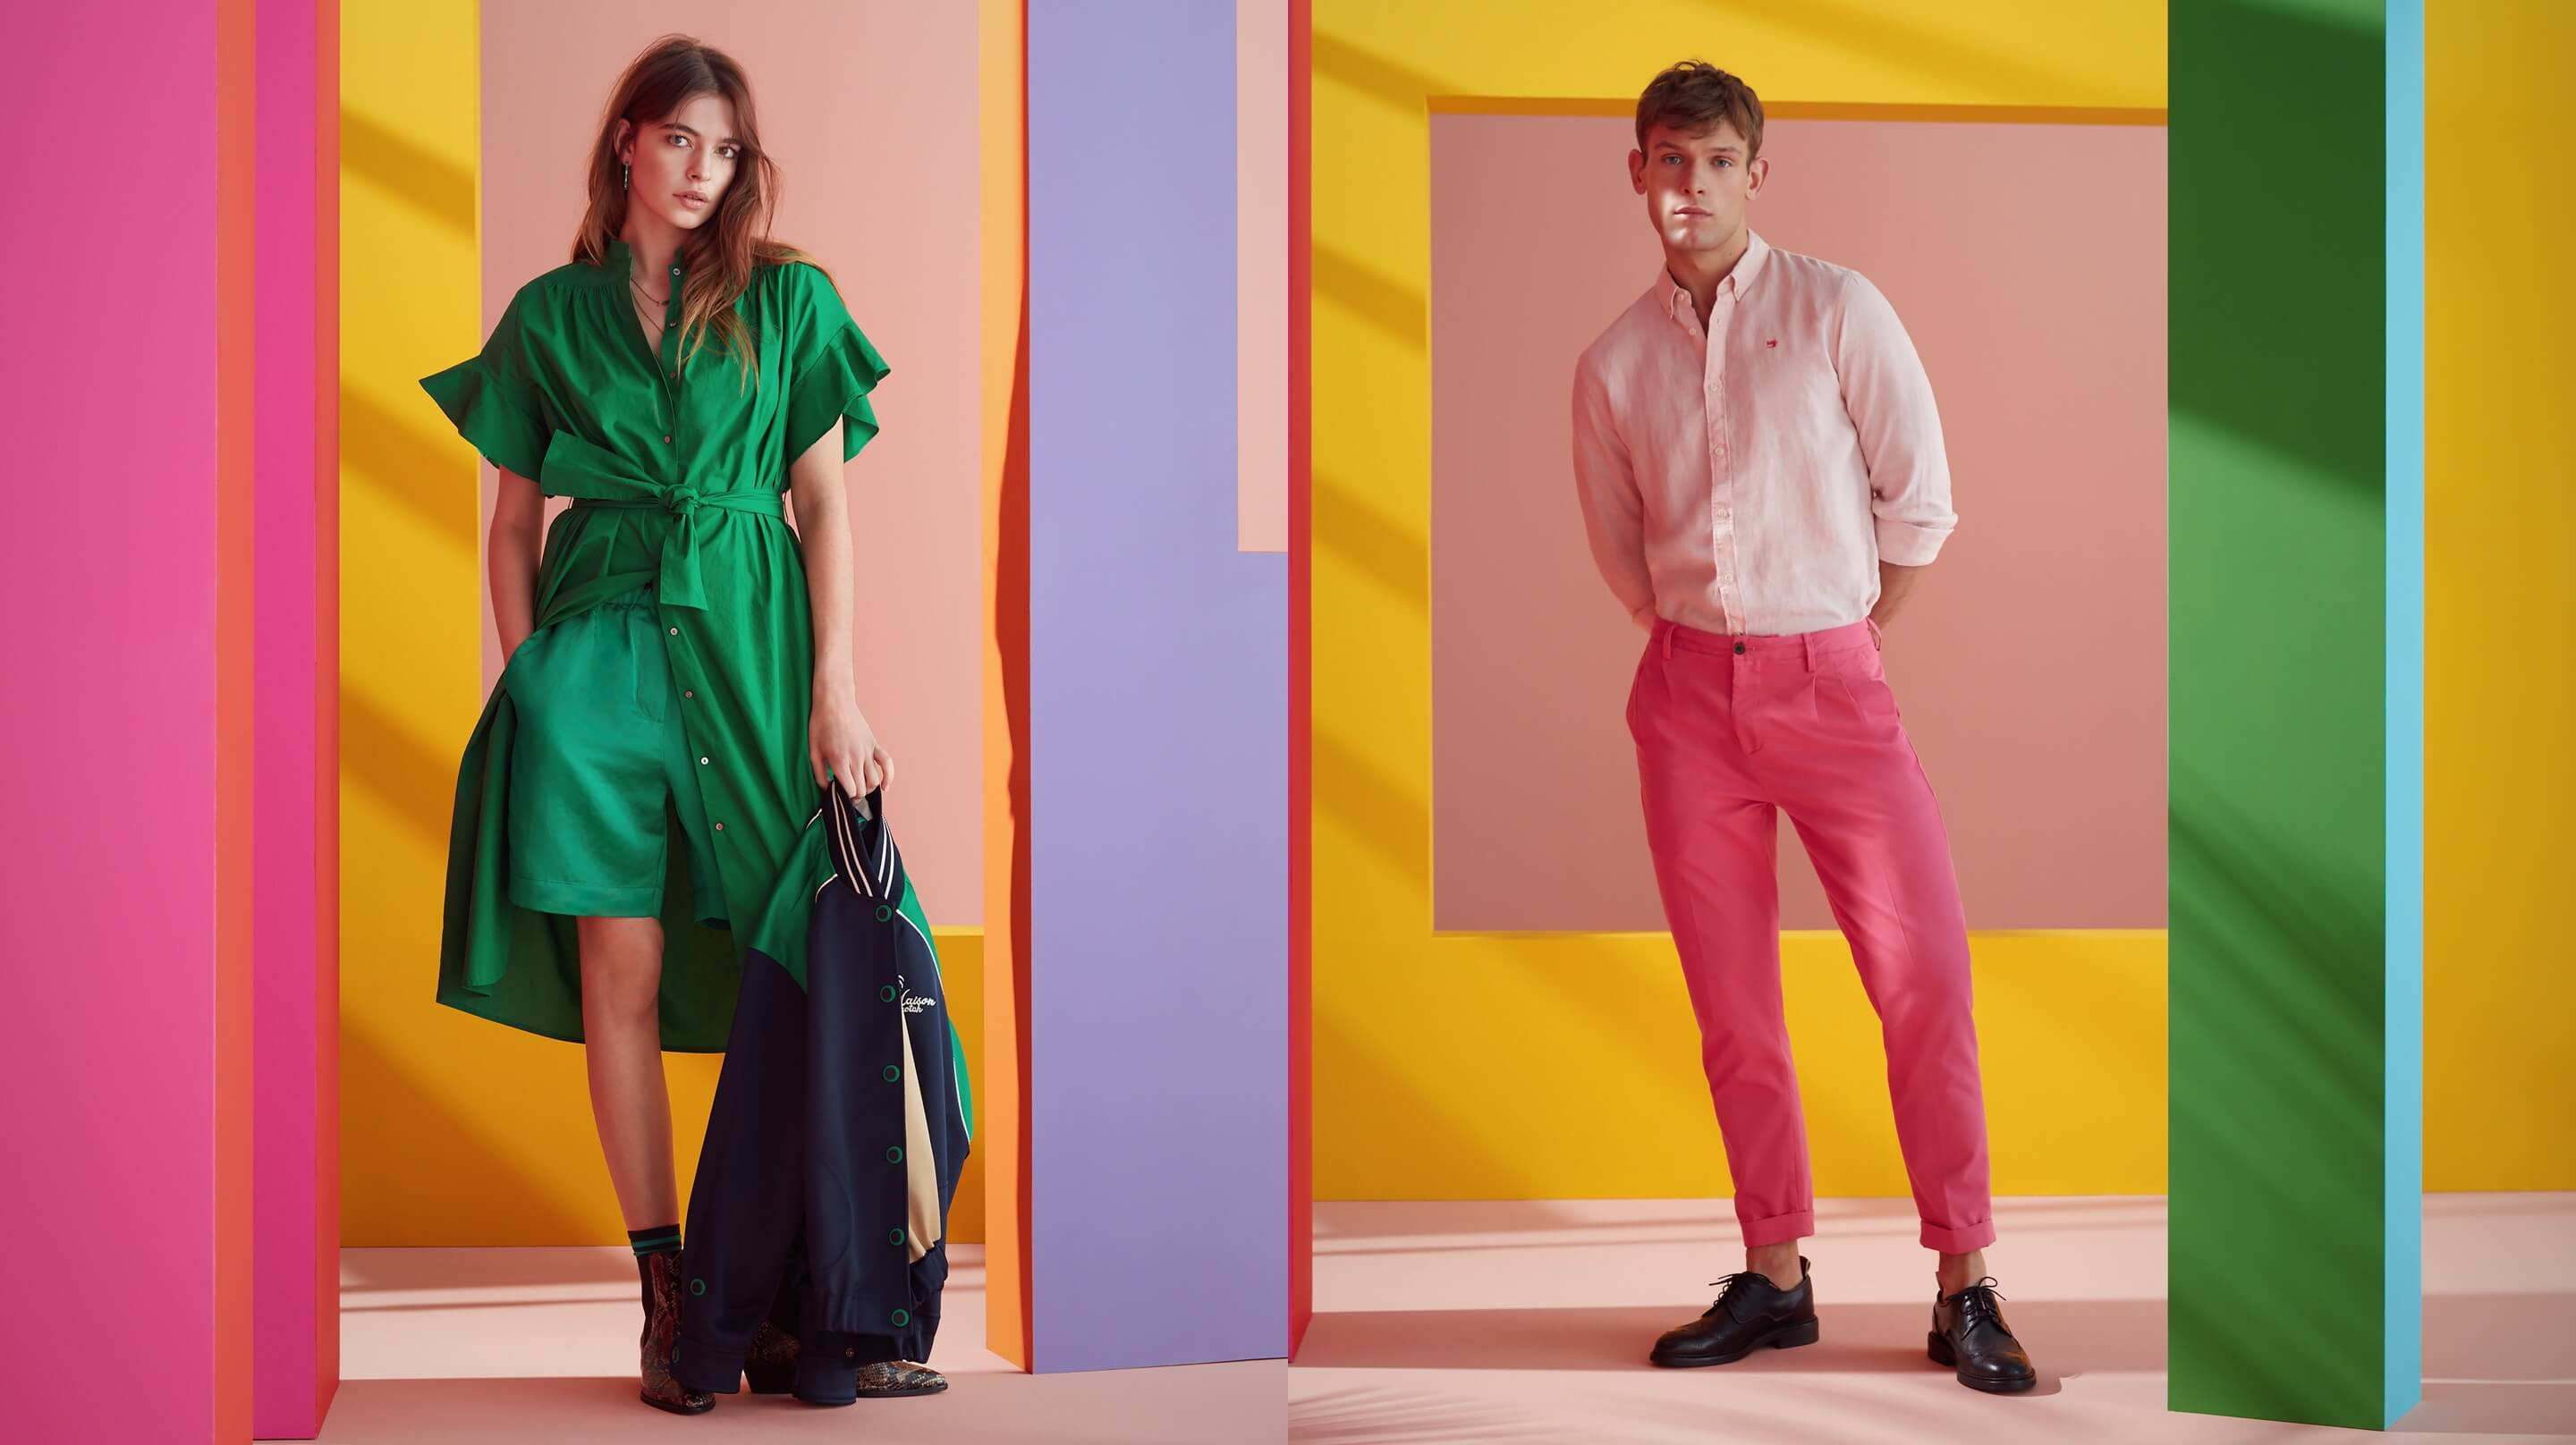 ss19-rainbow-edit-campaign-adults-06